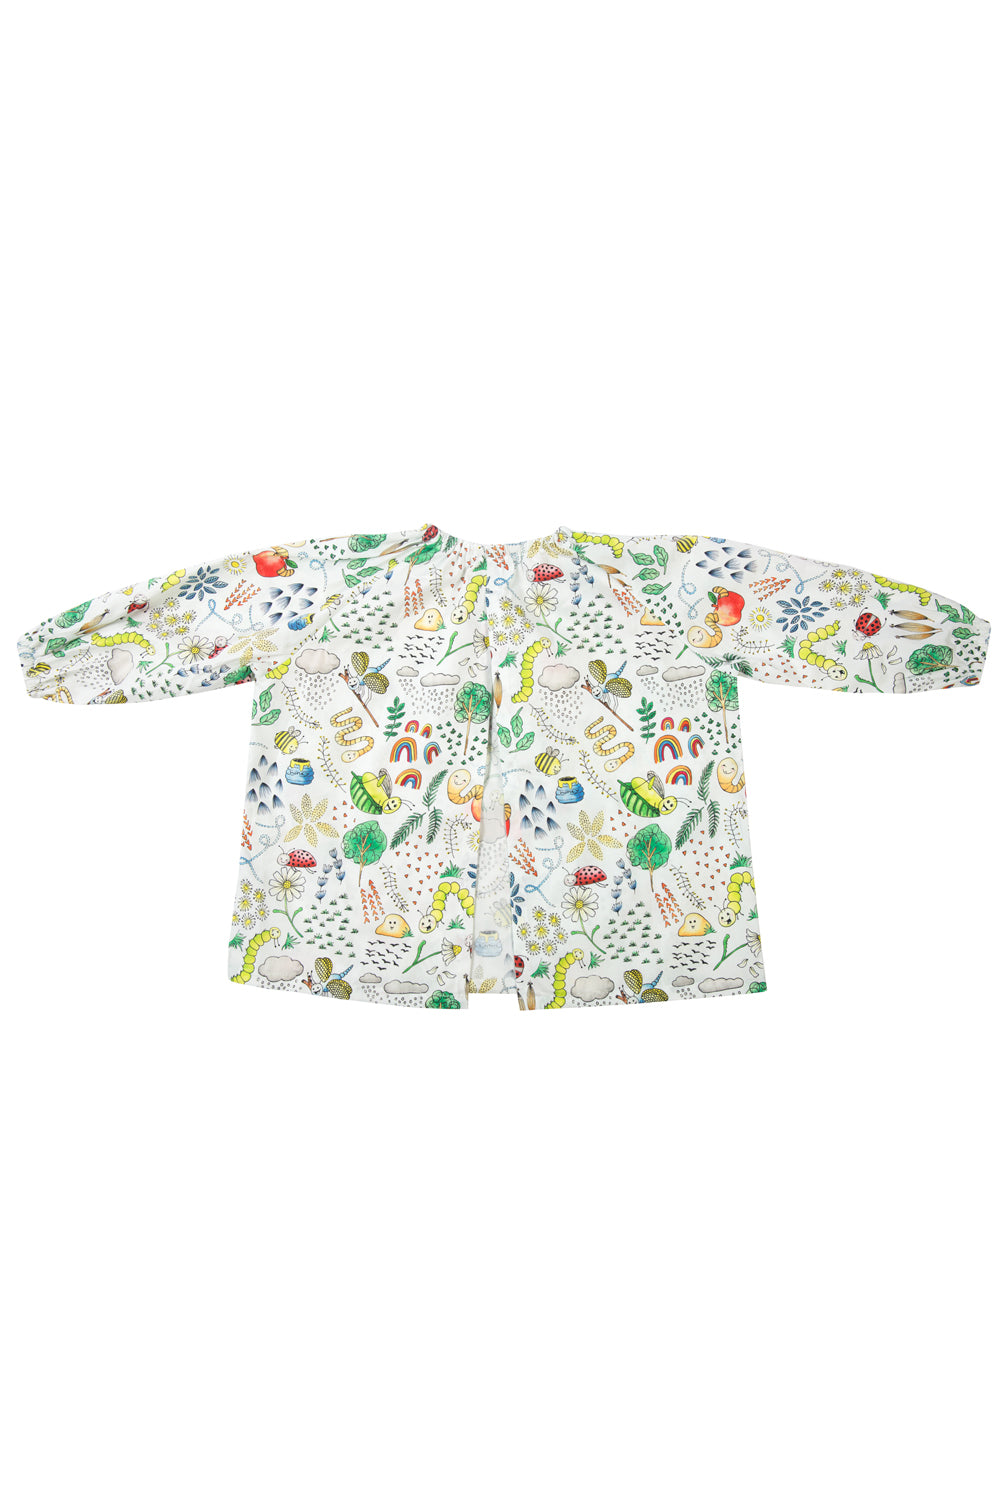 Little Creatures Art Smock